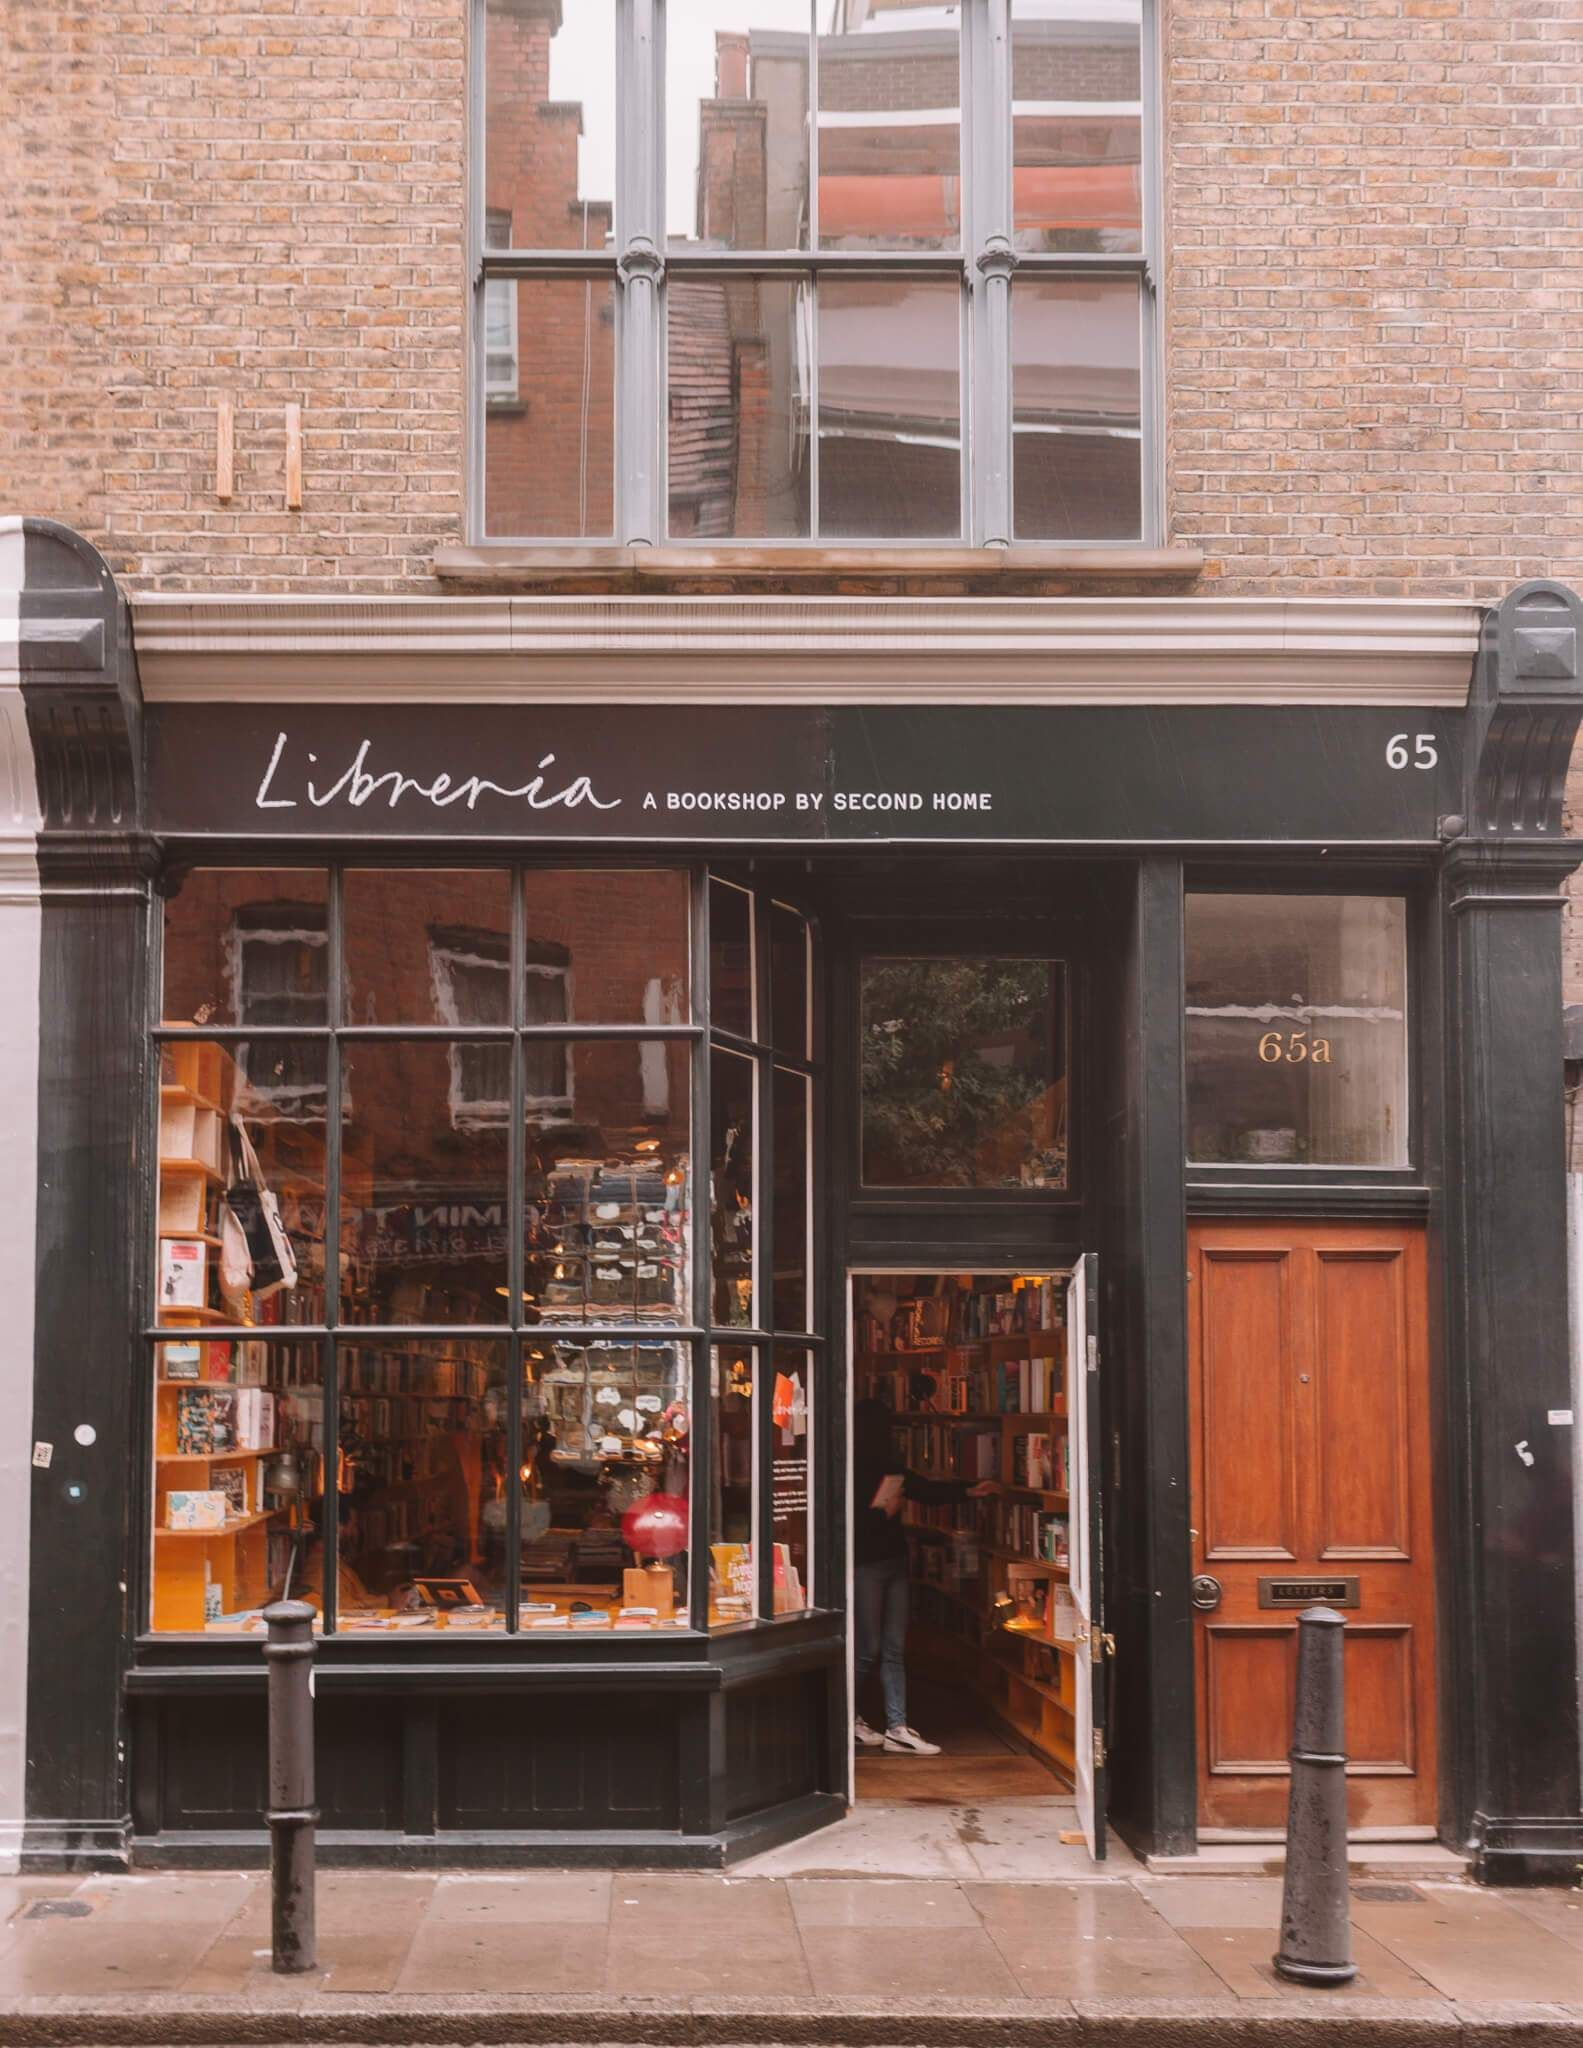 Libreria, Shoreditch. These are 15 of the most beautiful bookshops in London. London is home to some of the most beautiful bookshops in the world. These are all independent bookshops in London and they stock a variety of old and new, fiction and non-fiction etc. Perfect for bookworms in London! #whatshotblog #bookshopporn #bookstagram #bookshops #travelLondon